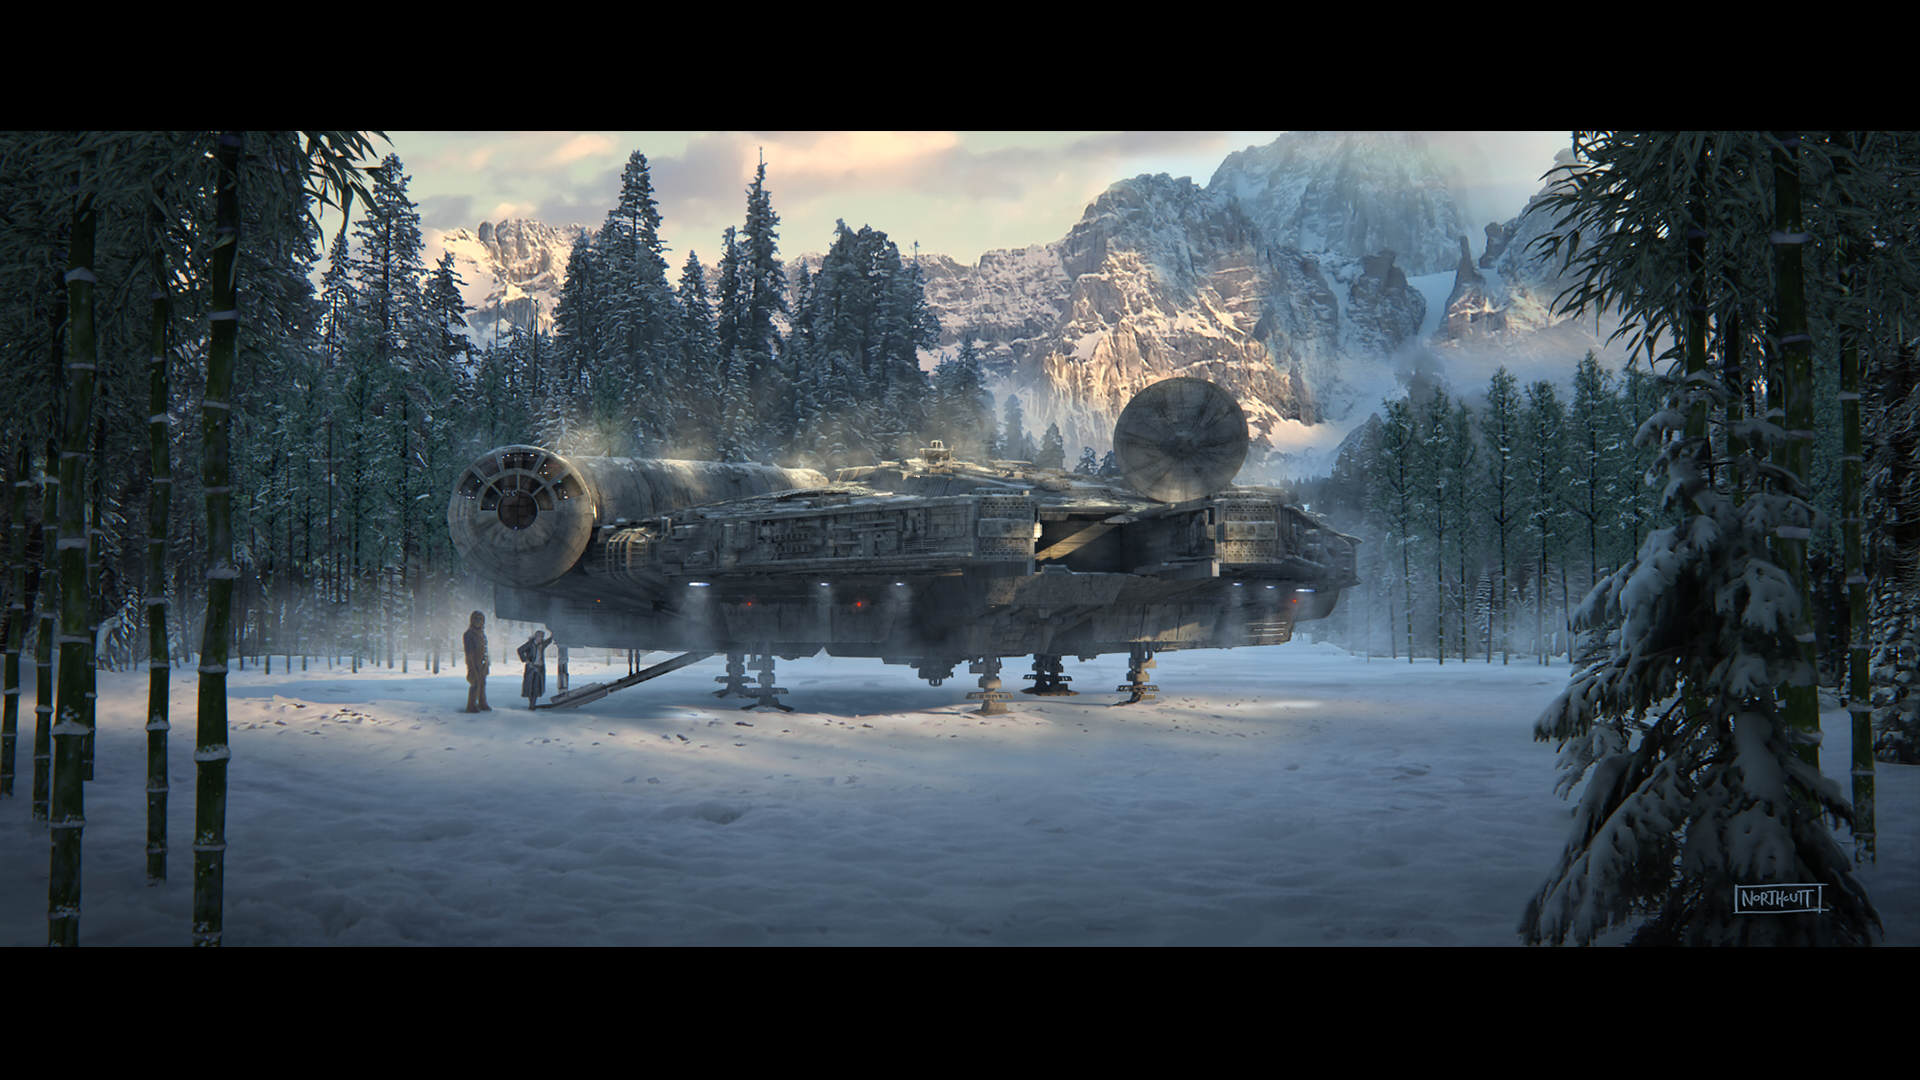 ARTDEPT VD TFA 007 1 Star Wars Creators Reveal Awesome Force Awakens Concept Art